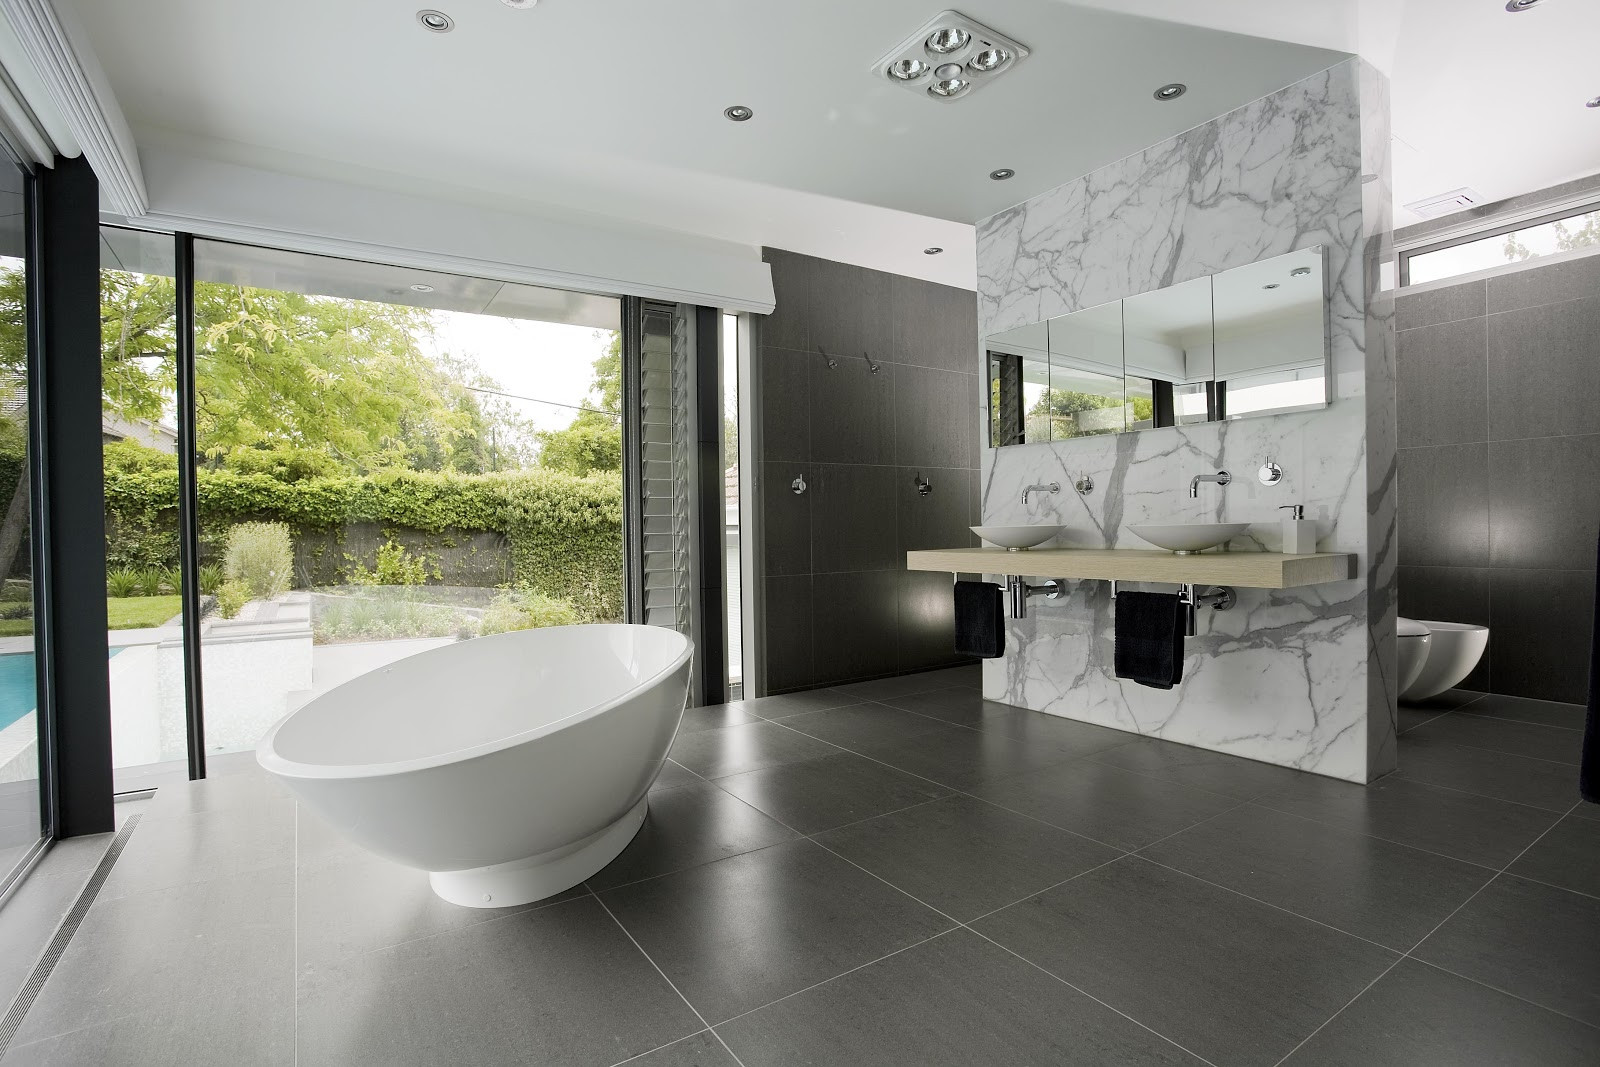 Breathtaking Bathrooms Design Minosa Modern Bathrooms the Search for something Different